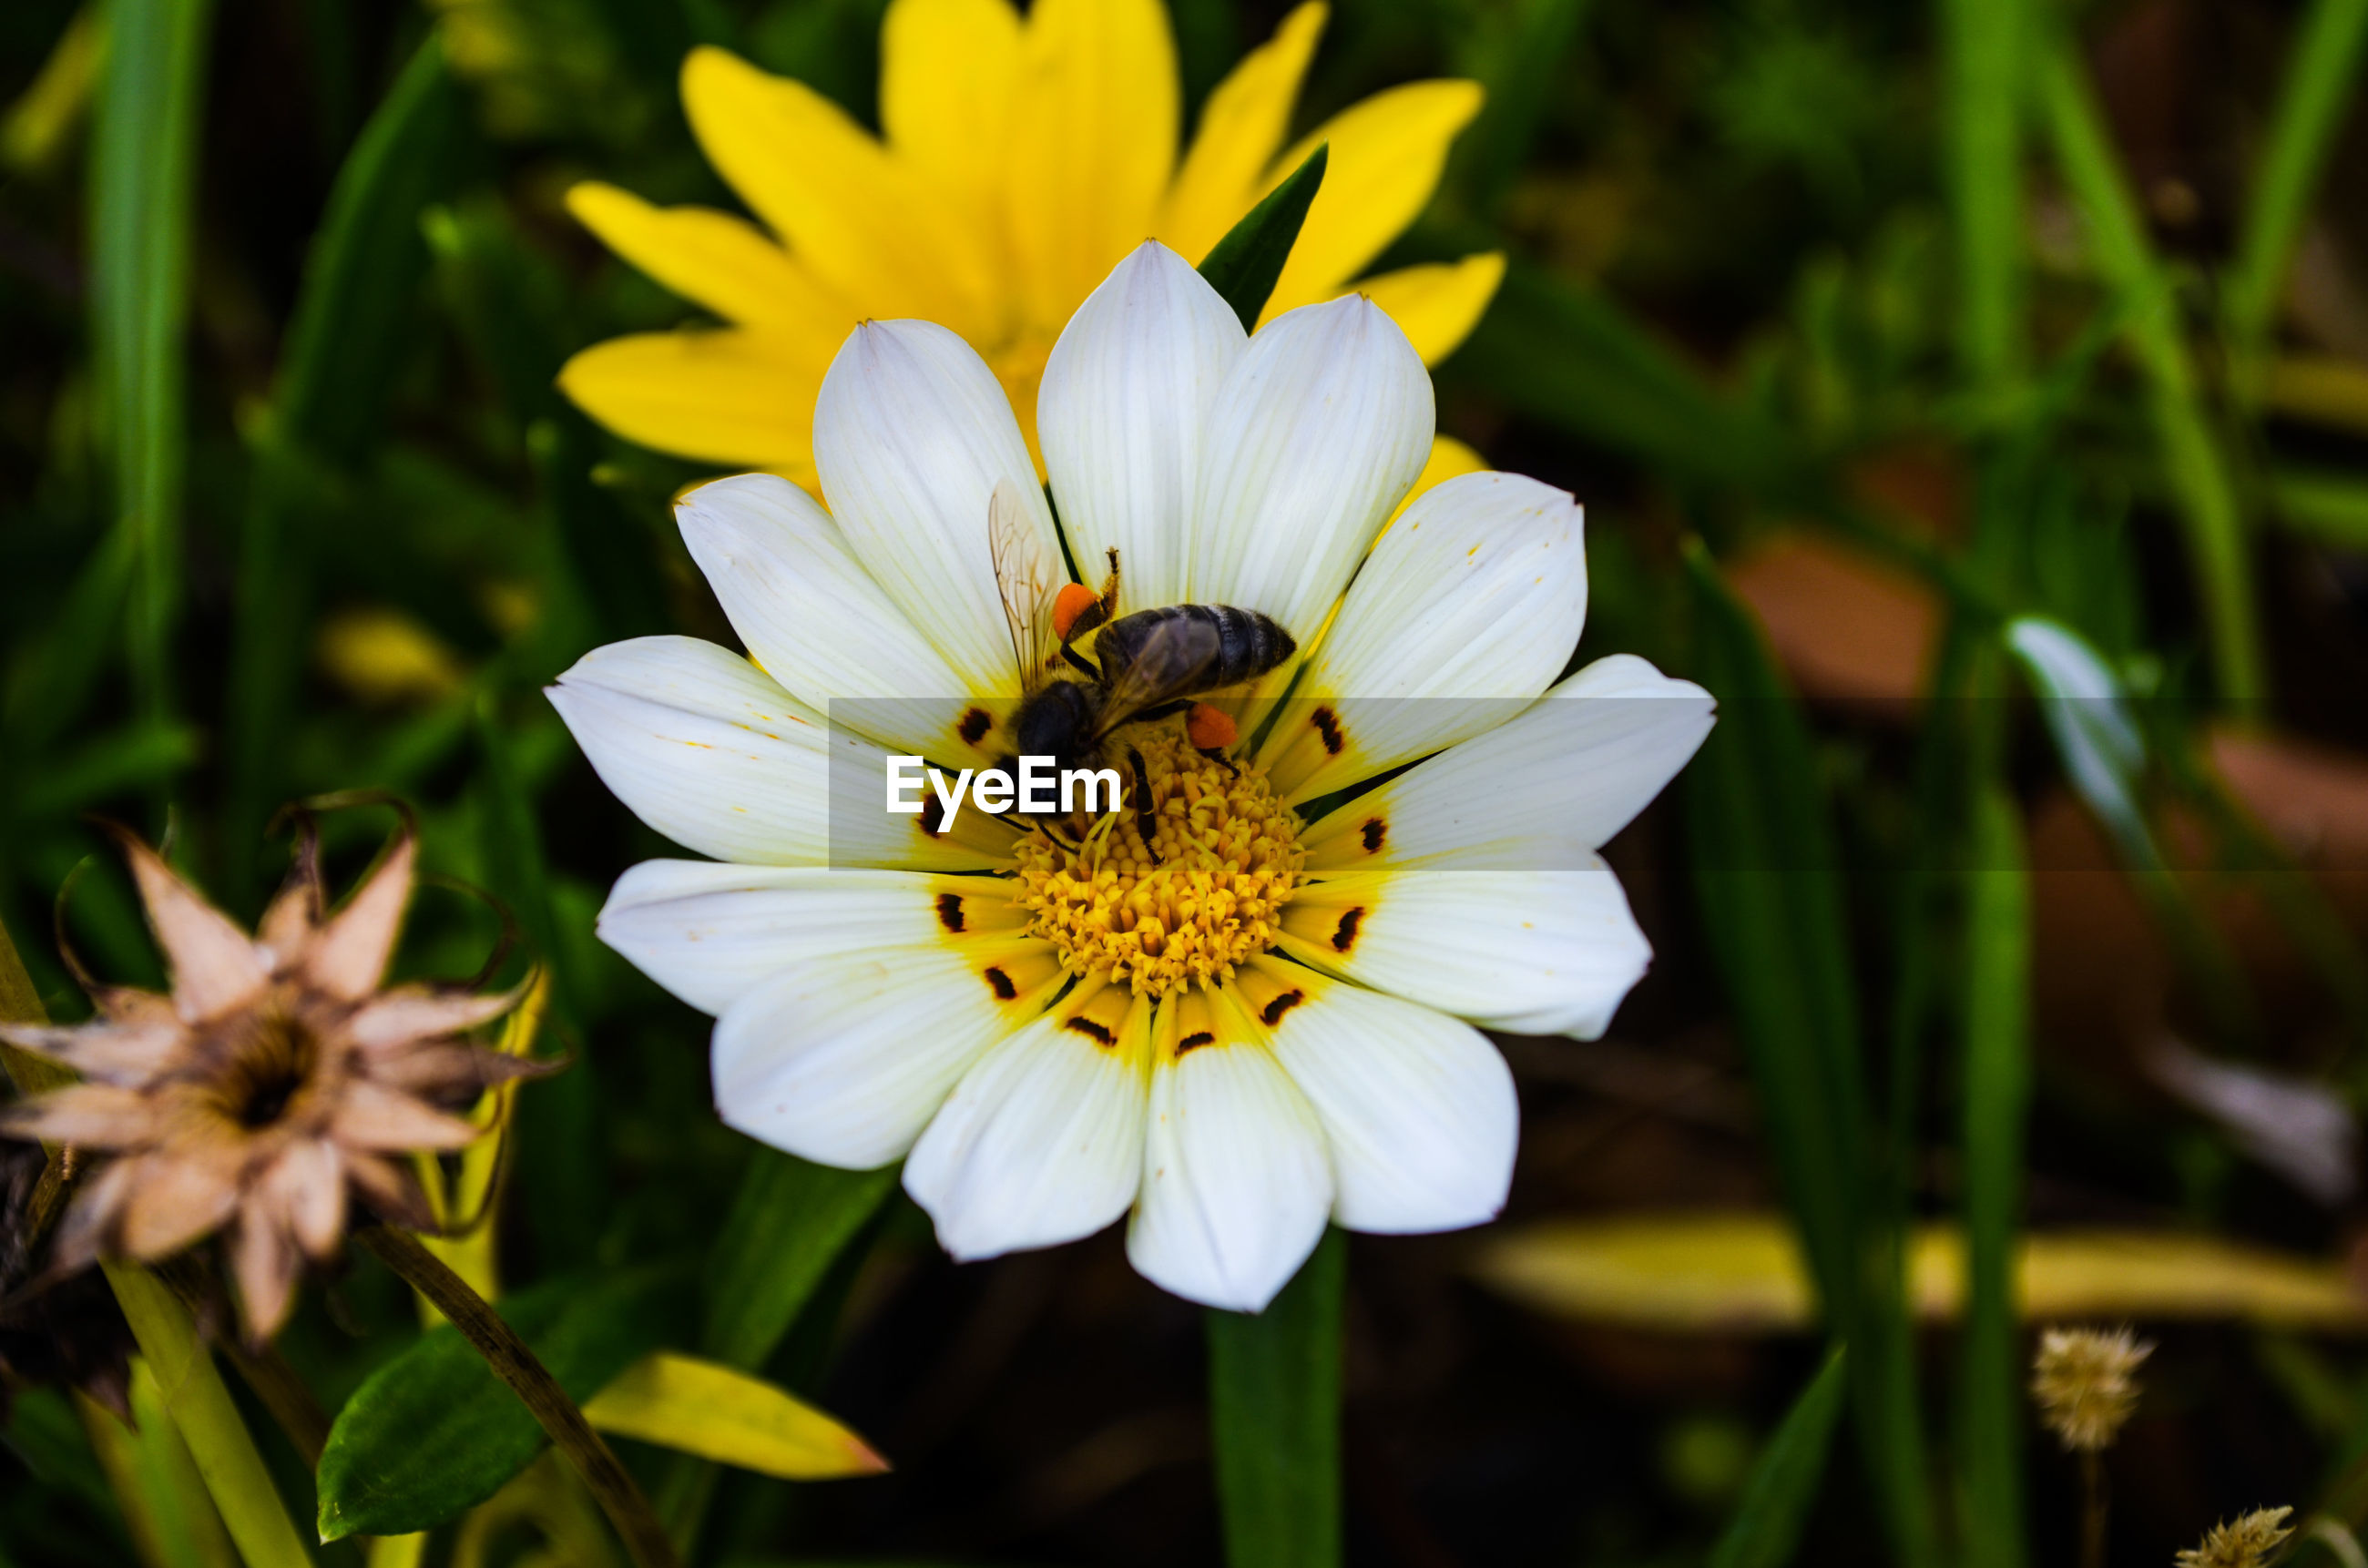 flower, flowering plant, fragility, vulnerability, petal, beauty in nature, plant, flower head, freshness, growth, inflorescence, animal themes, invertebrate, close-up, insect, one animal, animal, animals in the wild, pollen, animal wildlife, yellow, pollination, no people, outdoors